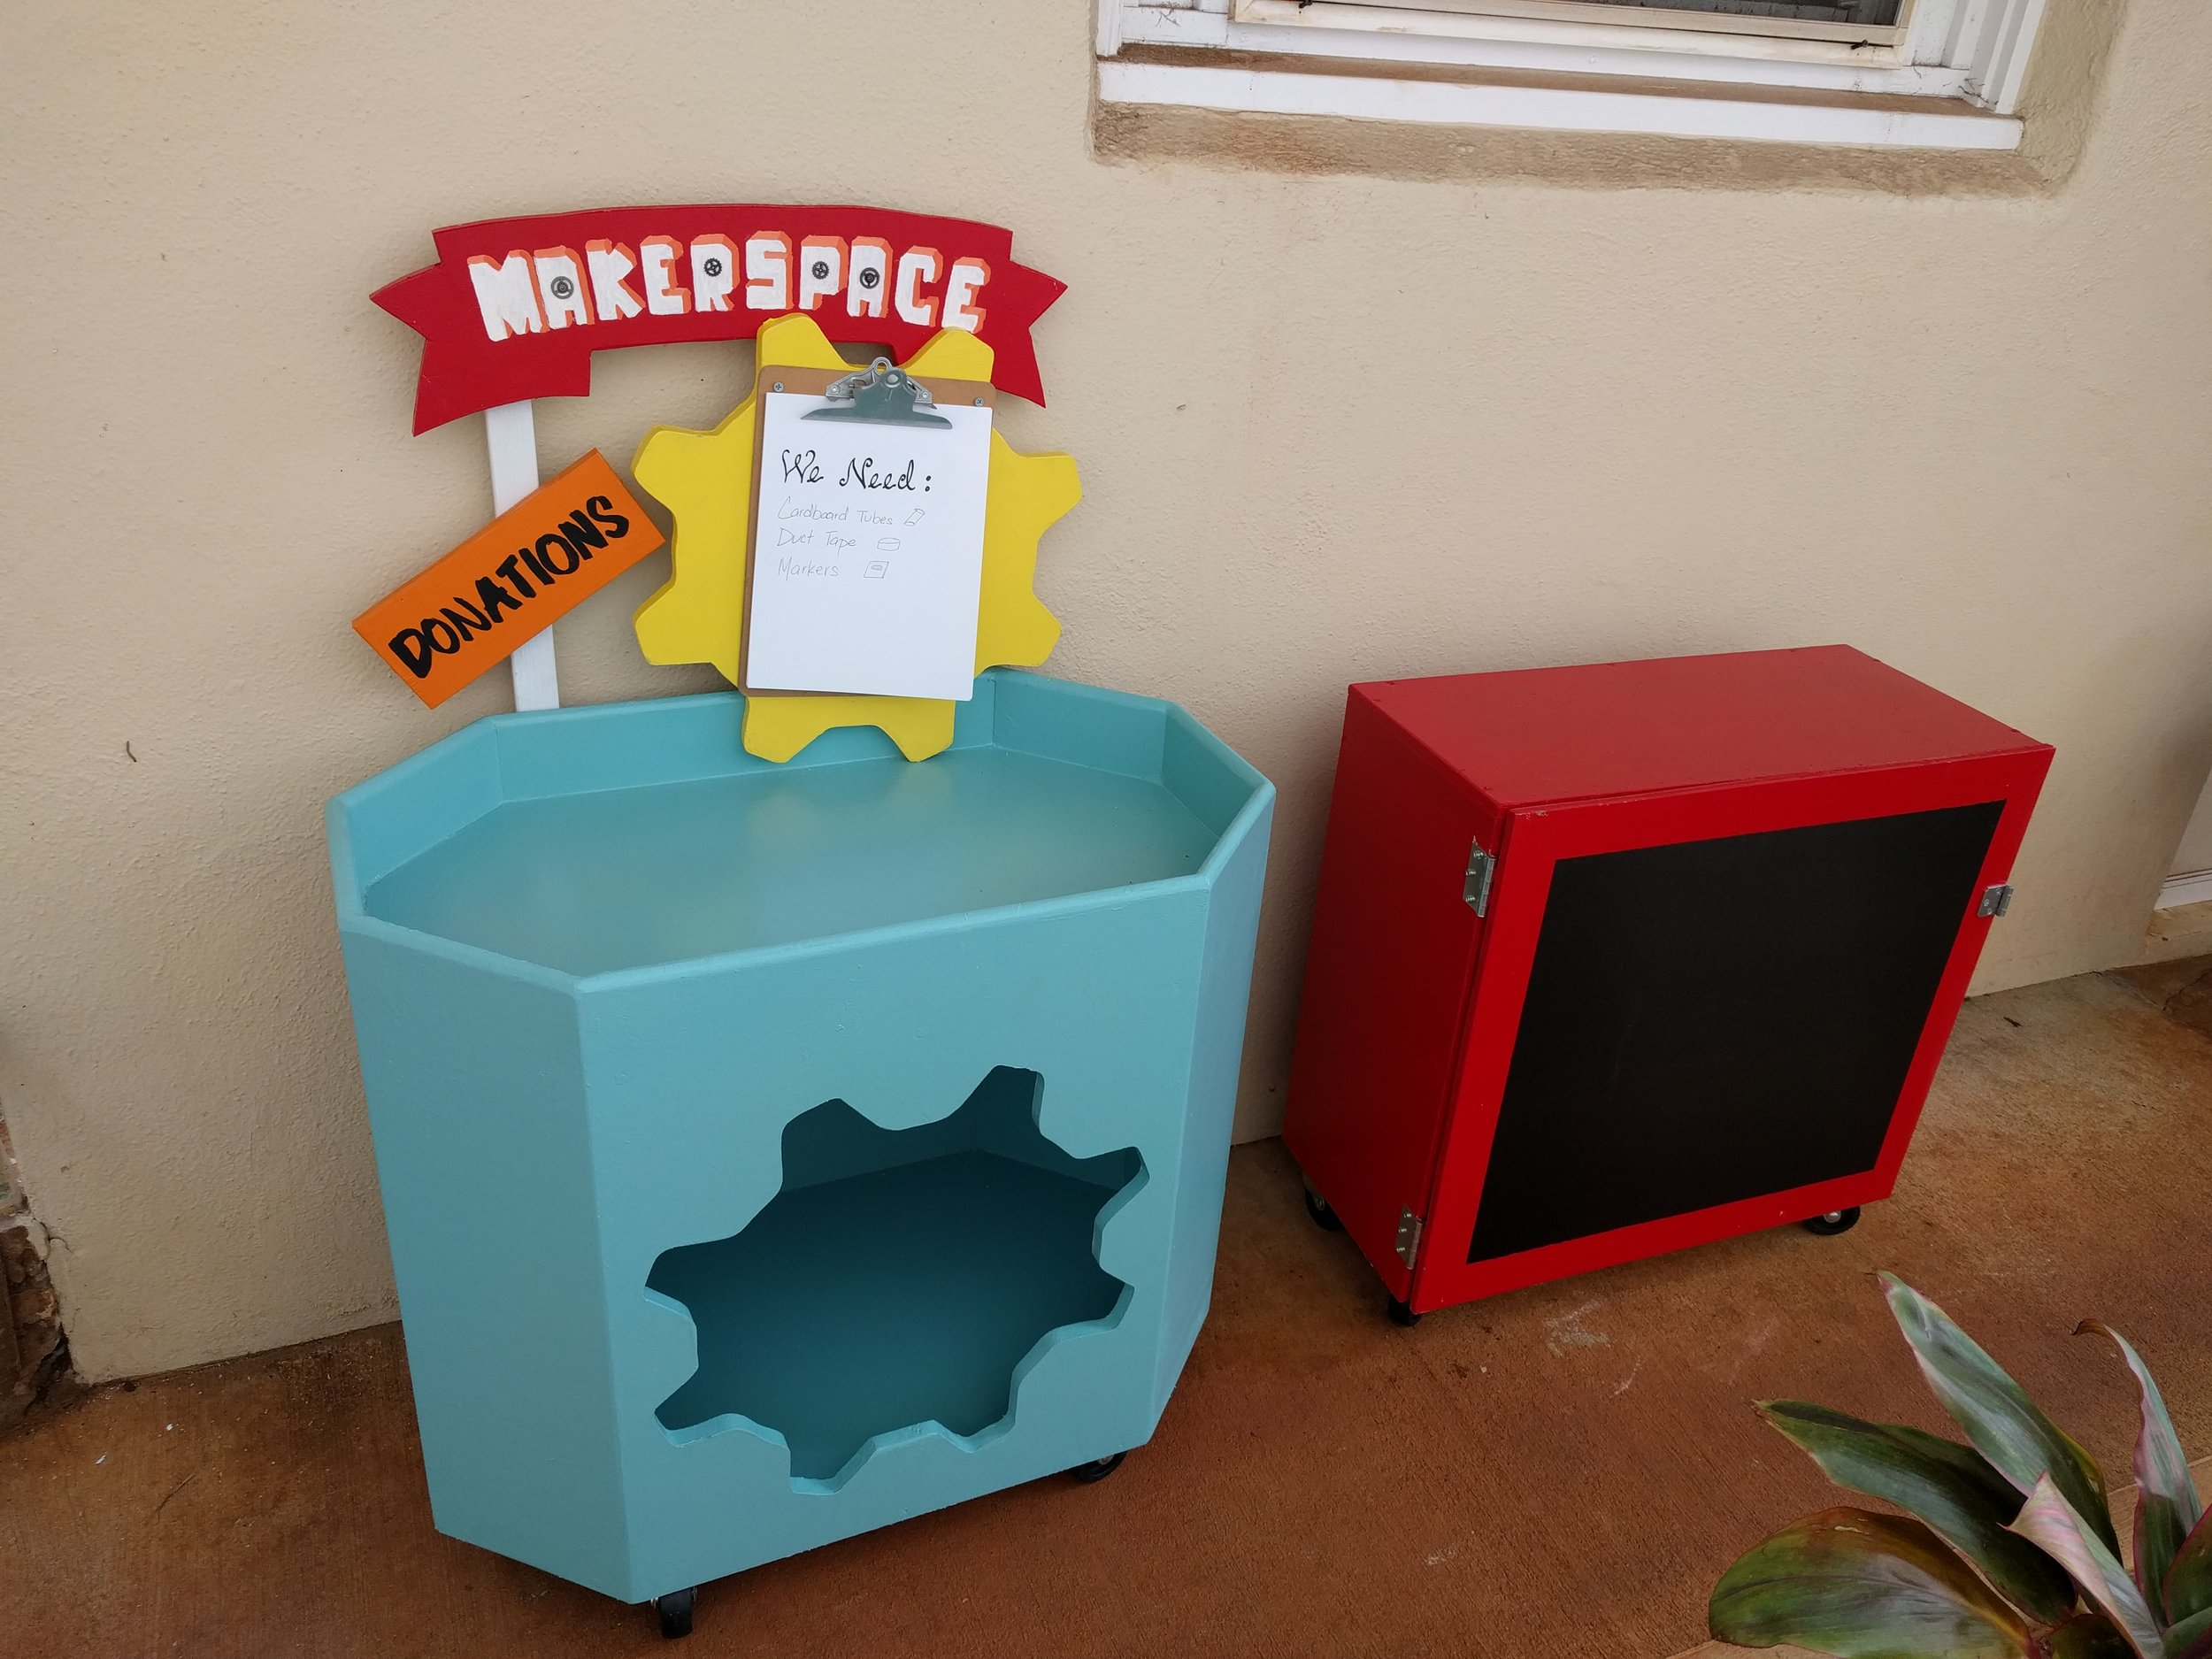 Maker Space Donation Bin